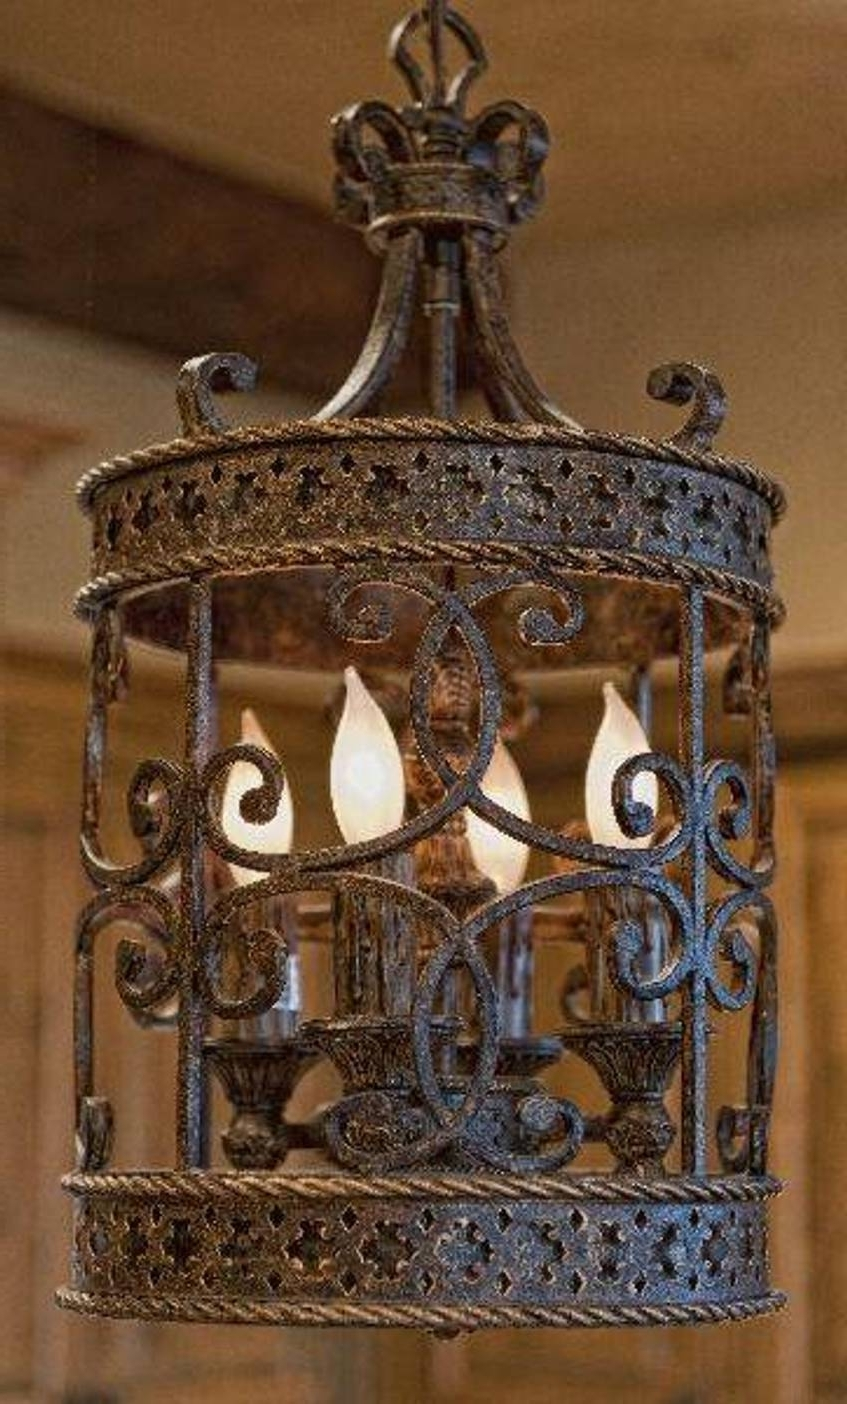 Newest Chandelier: Astonishing Cast Iron Chandelier Large Wrought Iron Pertaining To Large Iron Chandeliers (View 9 of 15)